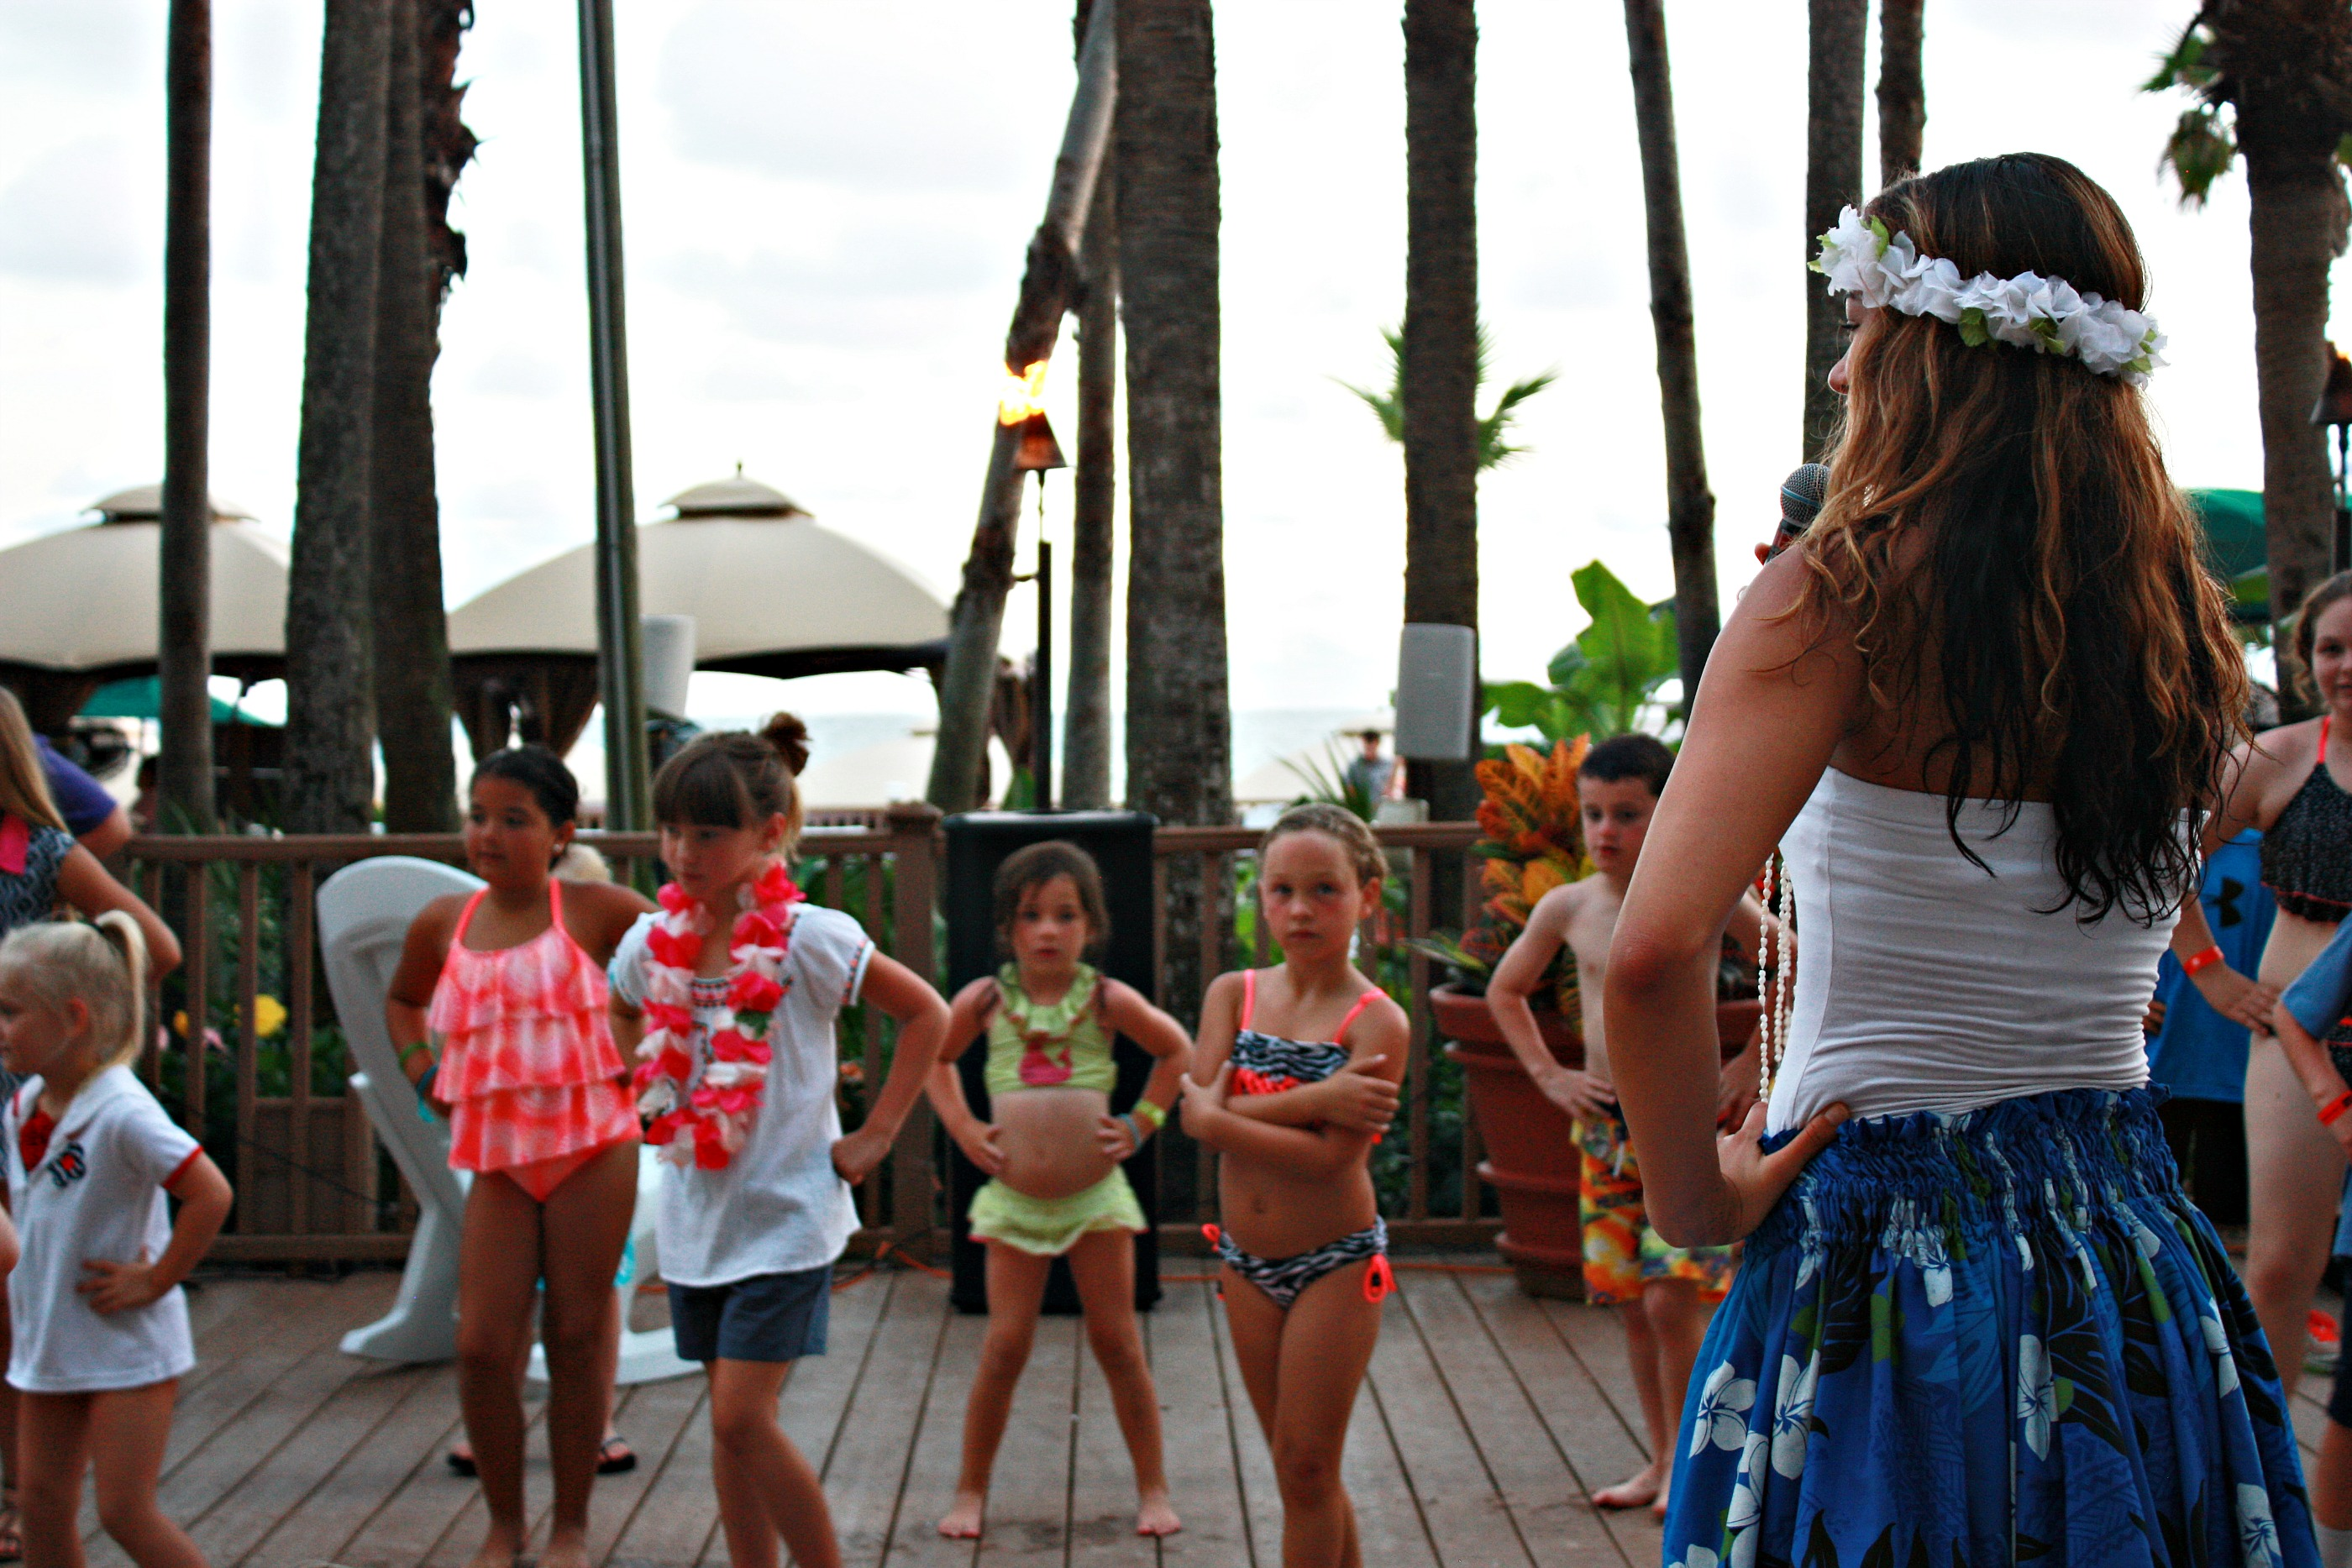 Learning to Hula Dance at the Holiday Inn Resort in PCB, FL